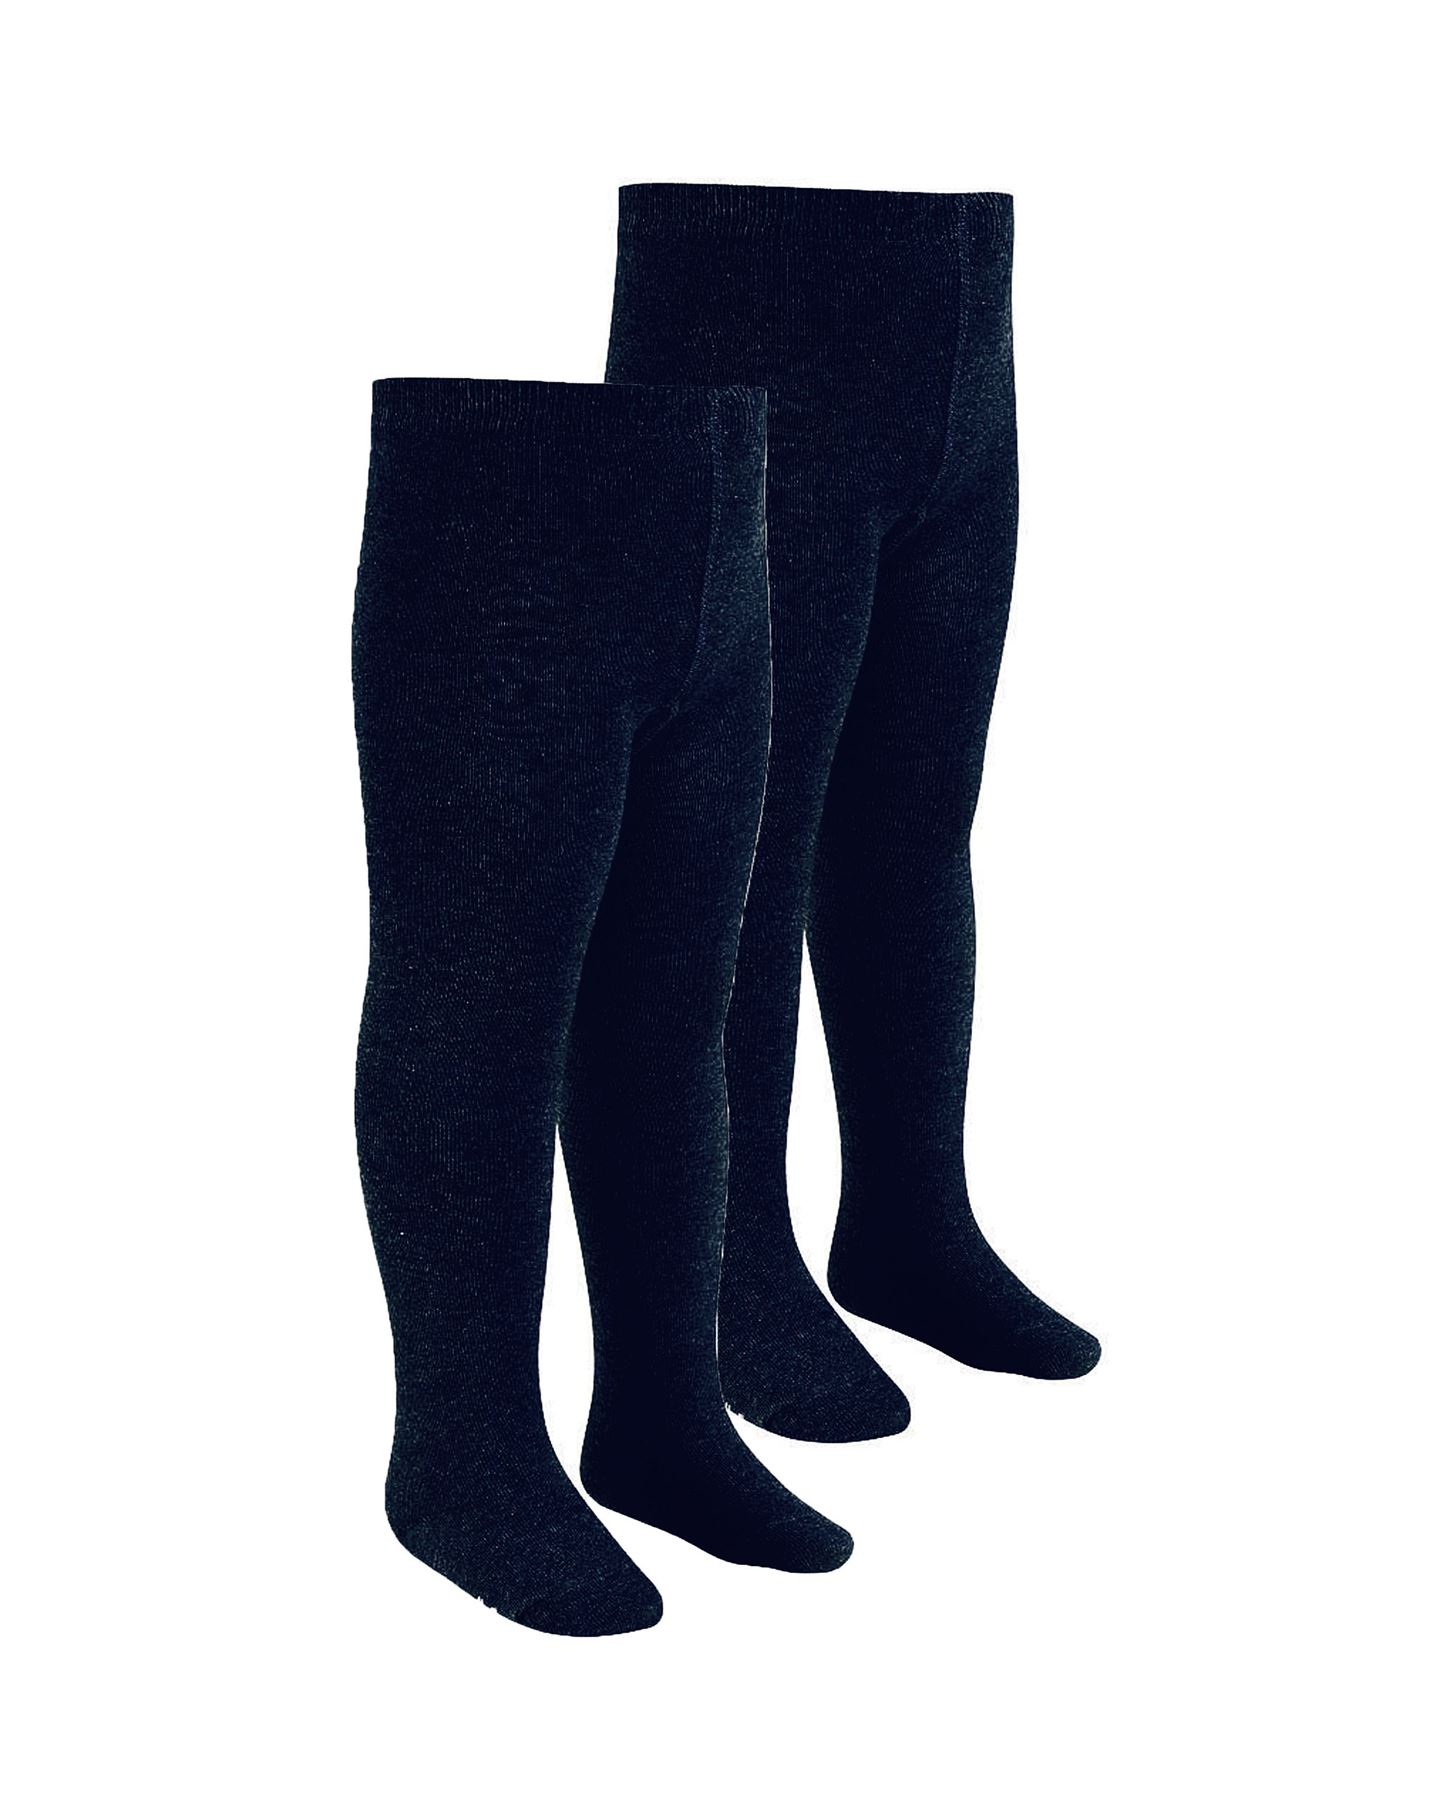 NEW-GIRLS-SCHOOL-UNIFROM-BLACK-GREY-NAVY-NIFTY-TIGHTS-TWIN-PACK-AGES-2-13-YEARS